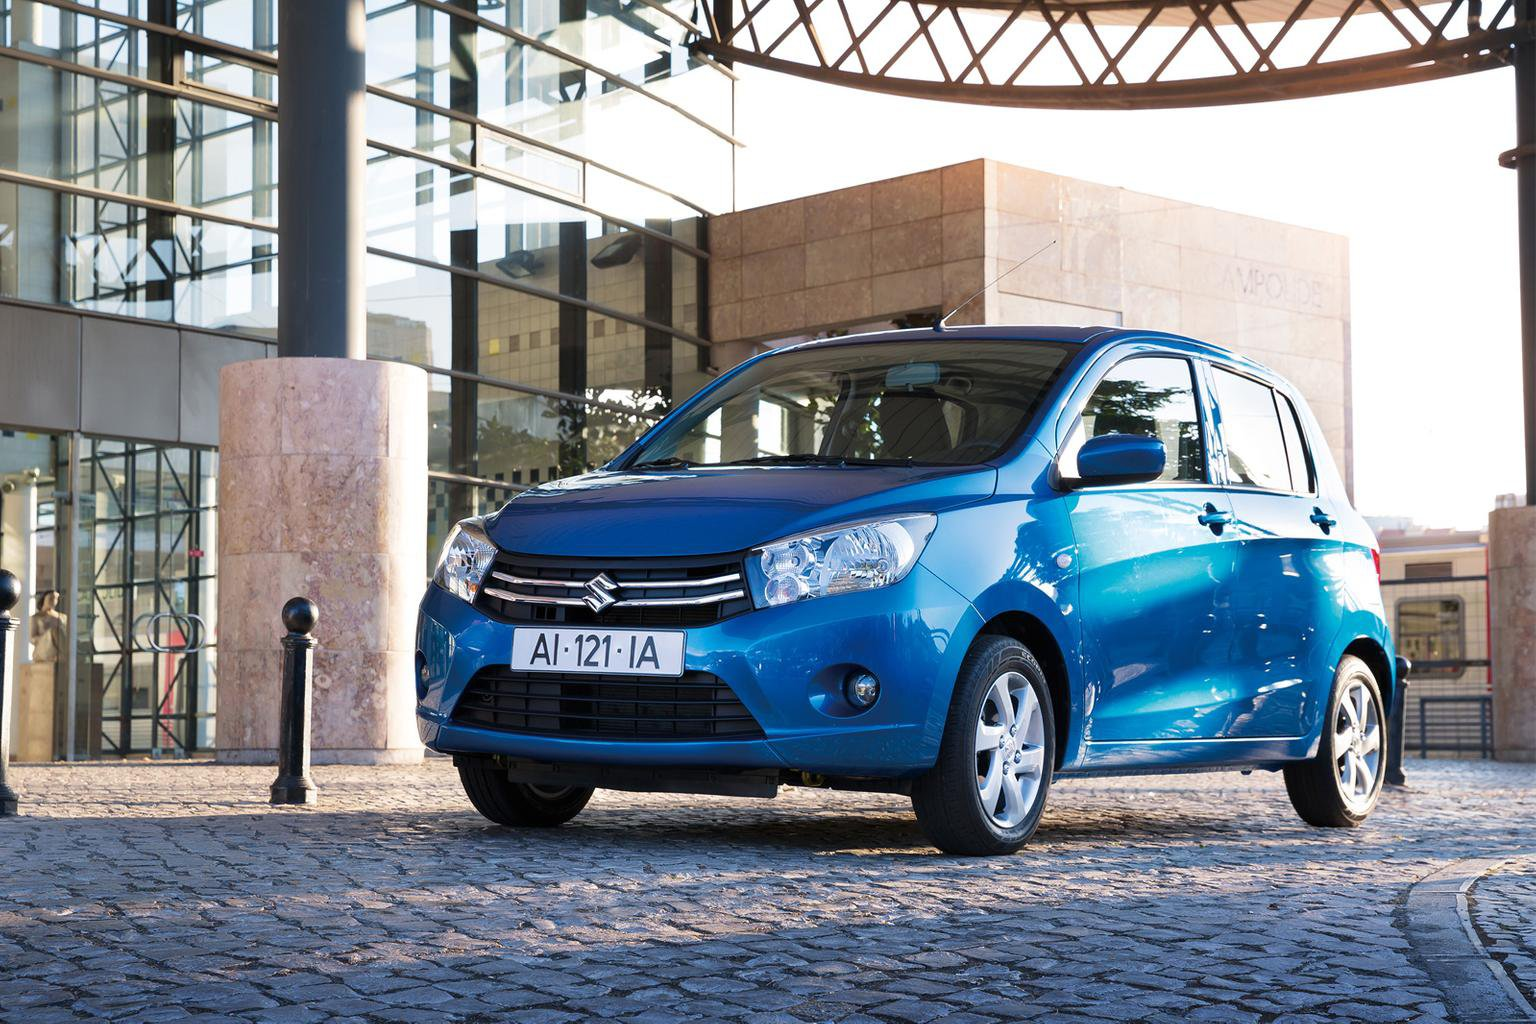 2015 Suzuki Celerio - specs, engines, prices and on-sale